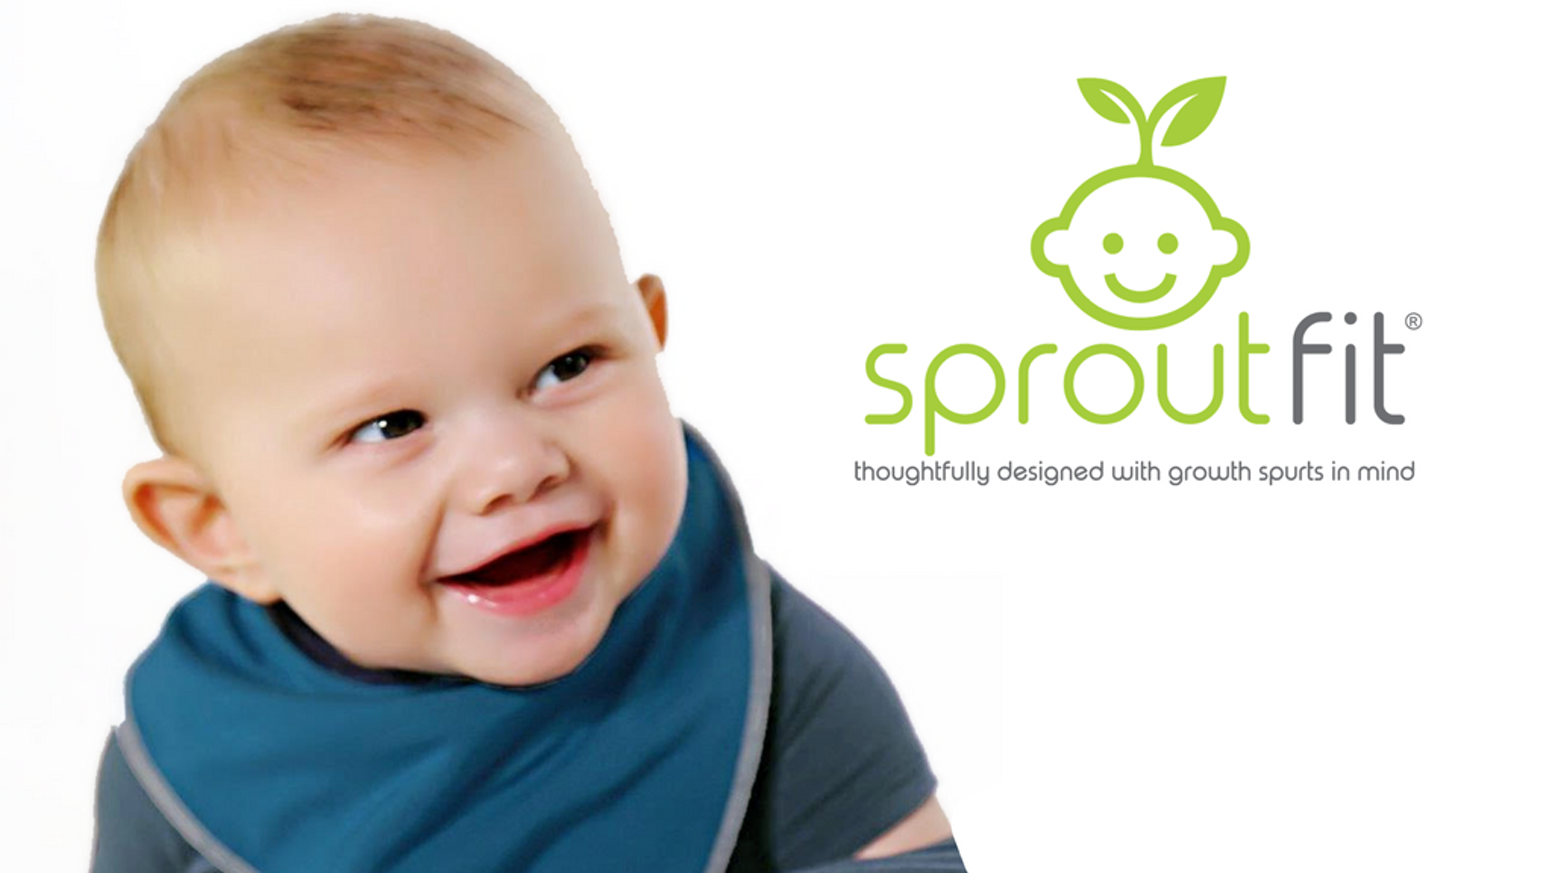 Babies outgrow clothing fast. Thoughtfully designed with growth spurts in mind, SproutFit grows with baby and is made in the USA.